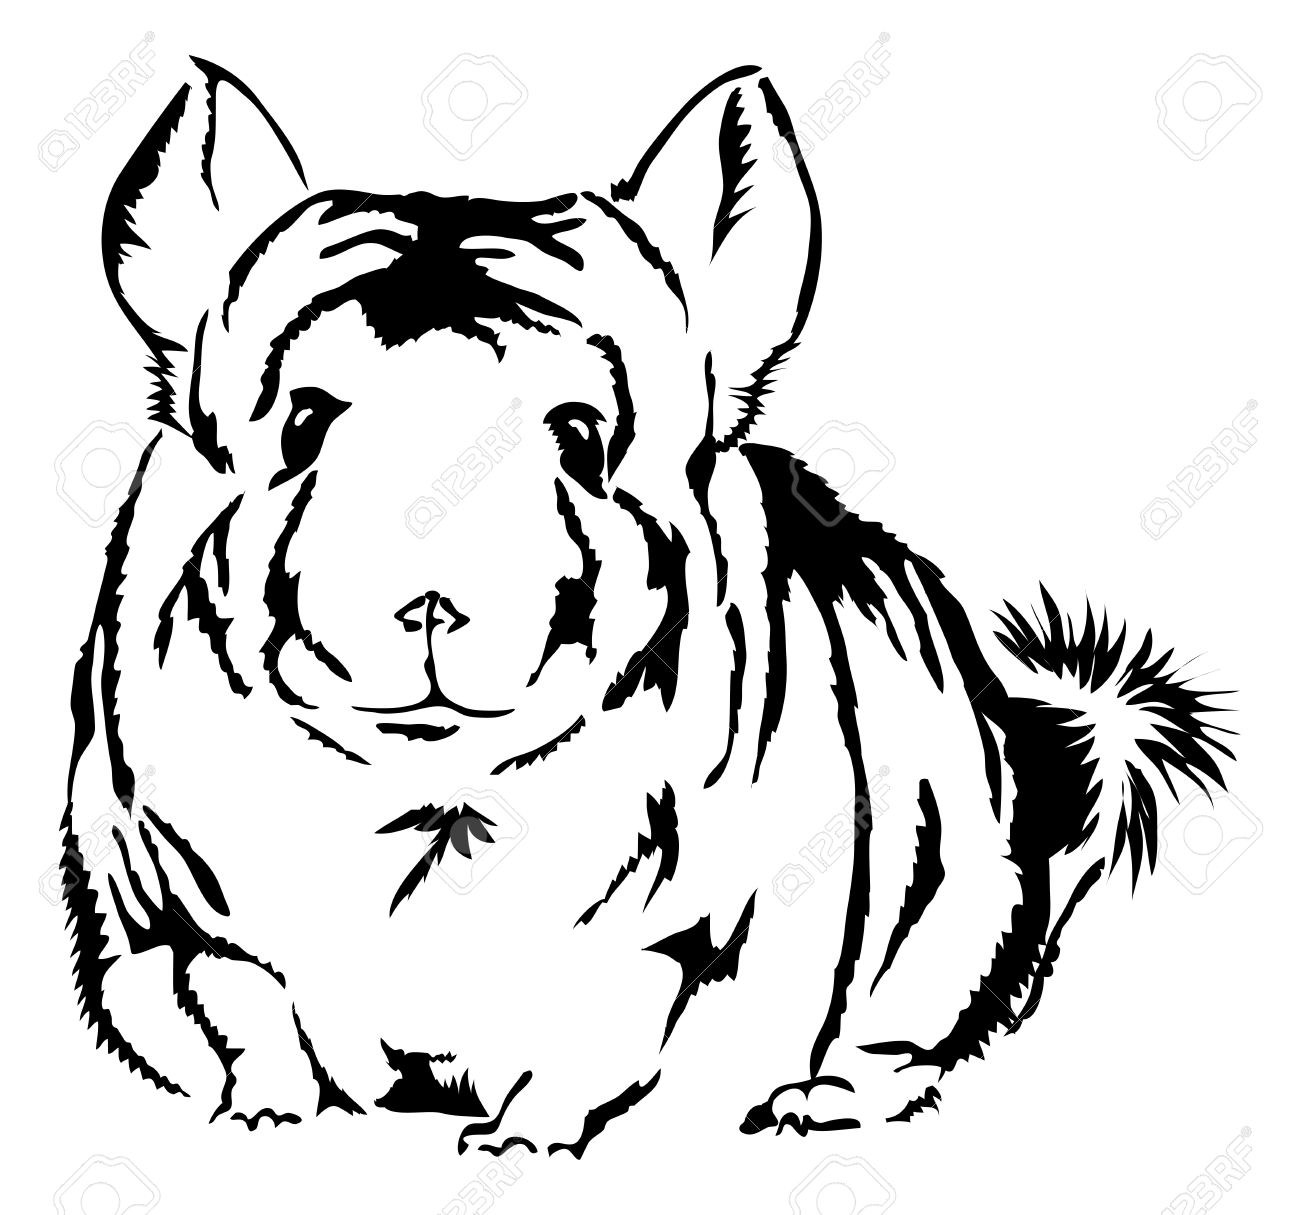 Chinchilla silhouette clipart.